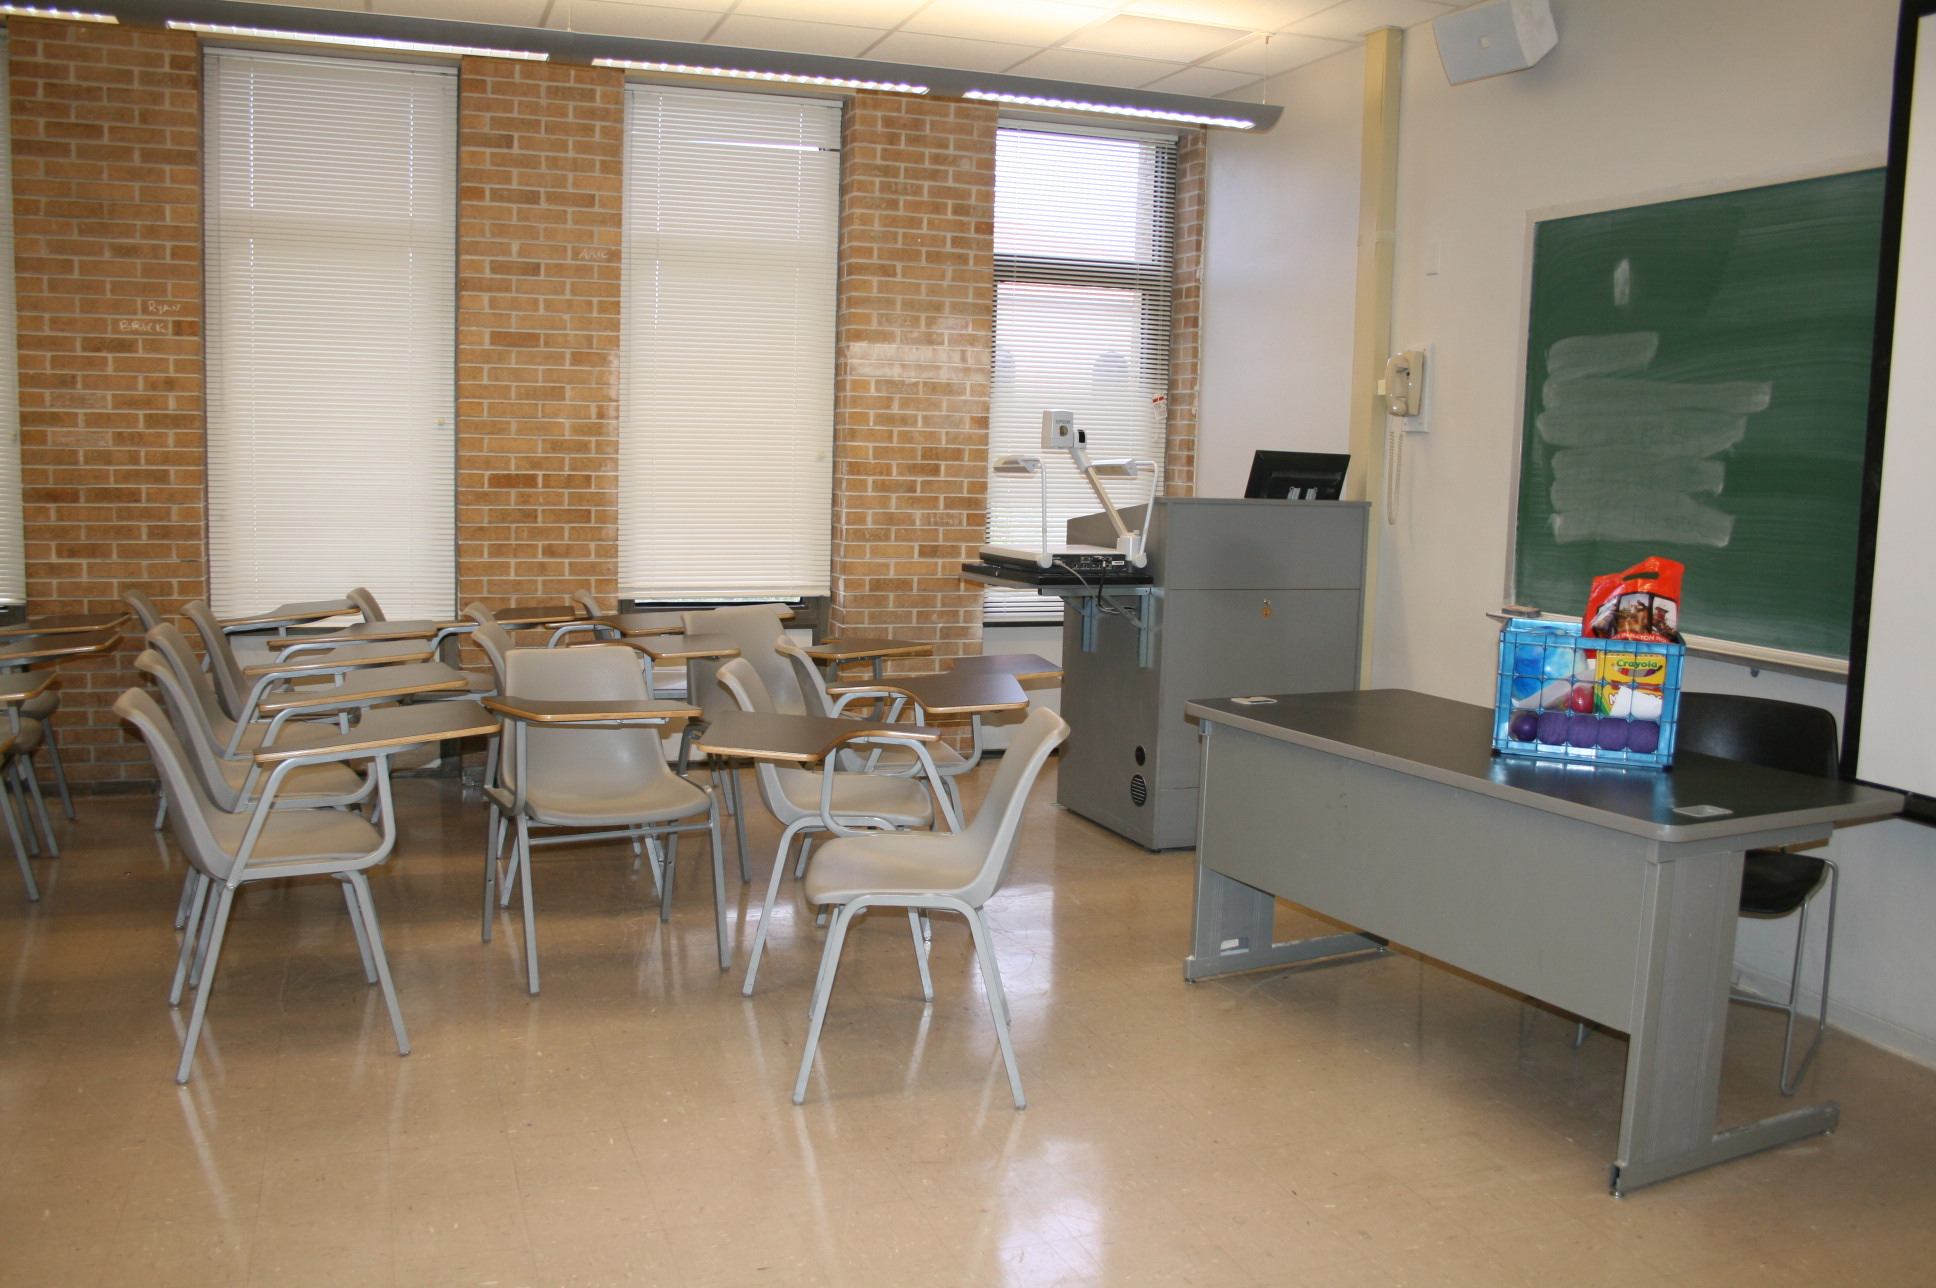 Lockett 232 from back of room